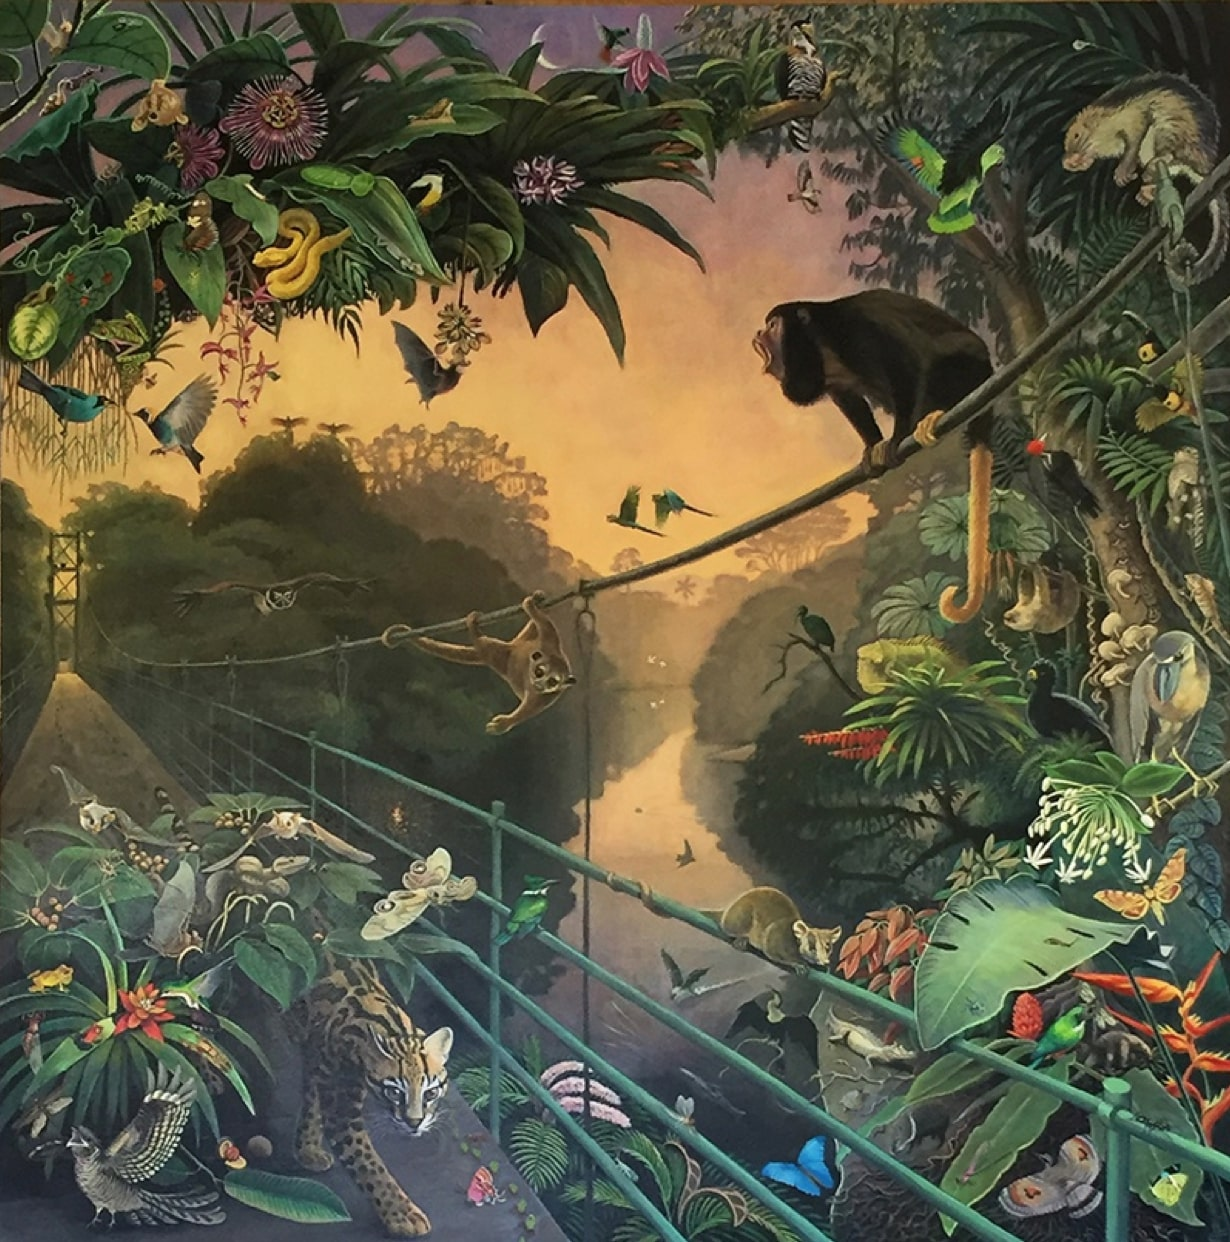 Dawn at La Selva 2018 - Prints and merchandise using this design are available at La Selva